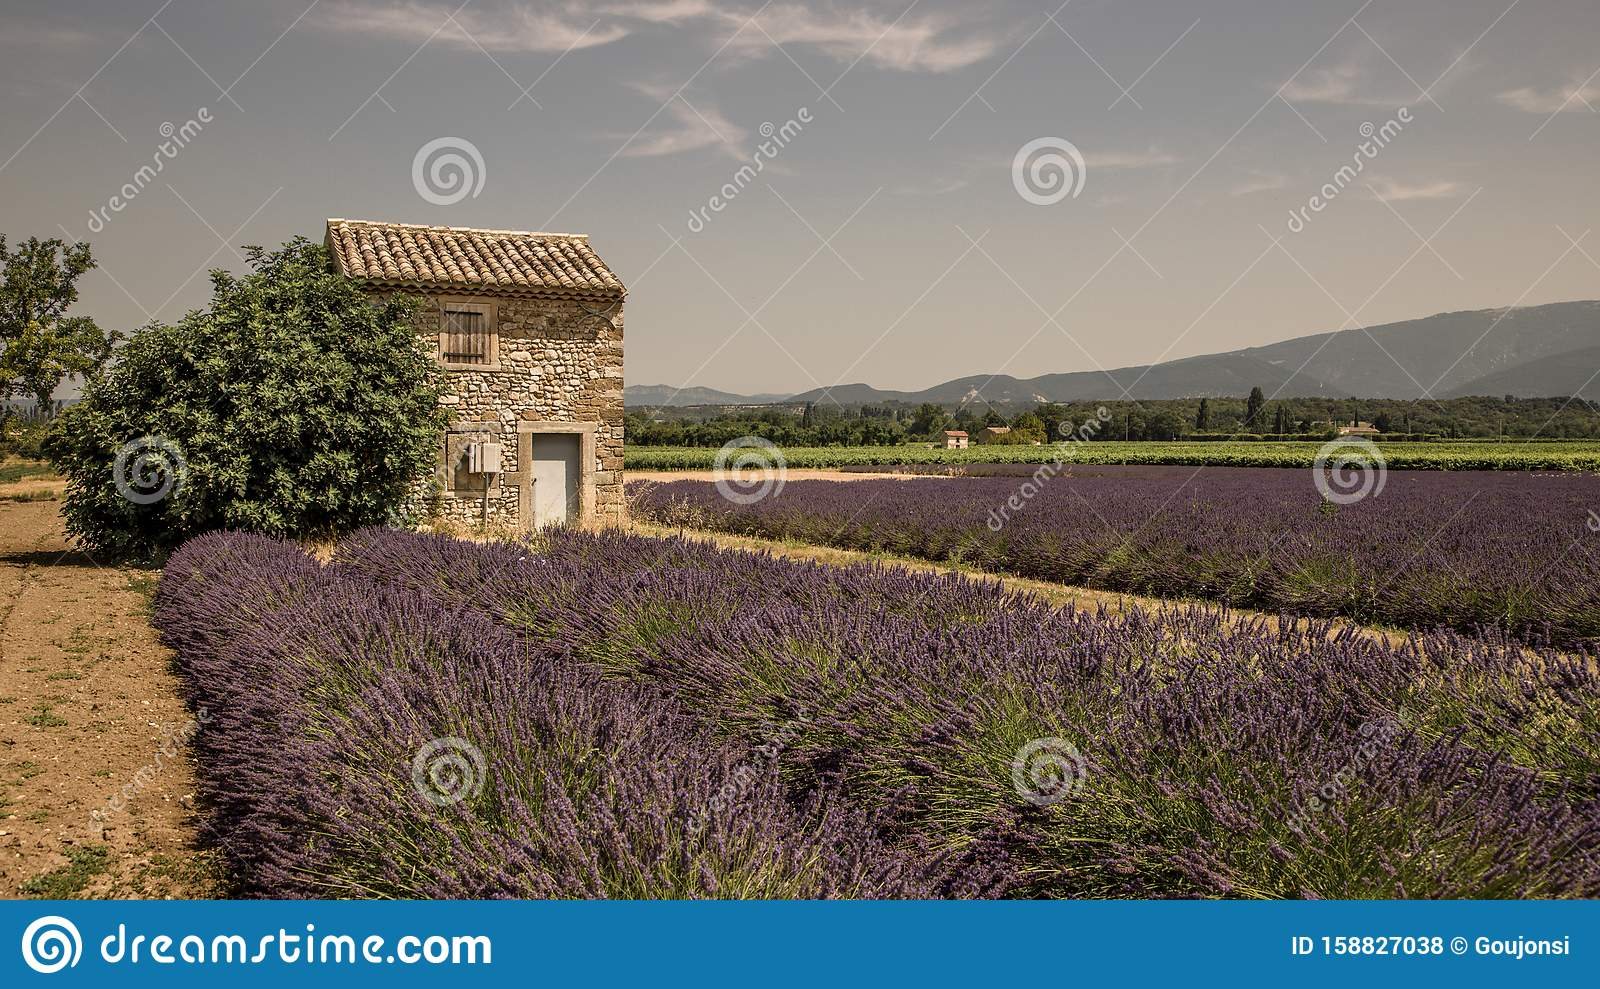 Provencal cottage in the middle of lavender fields